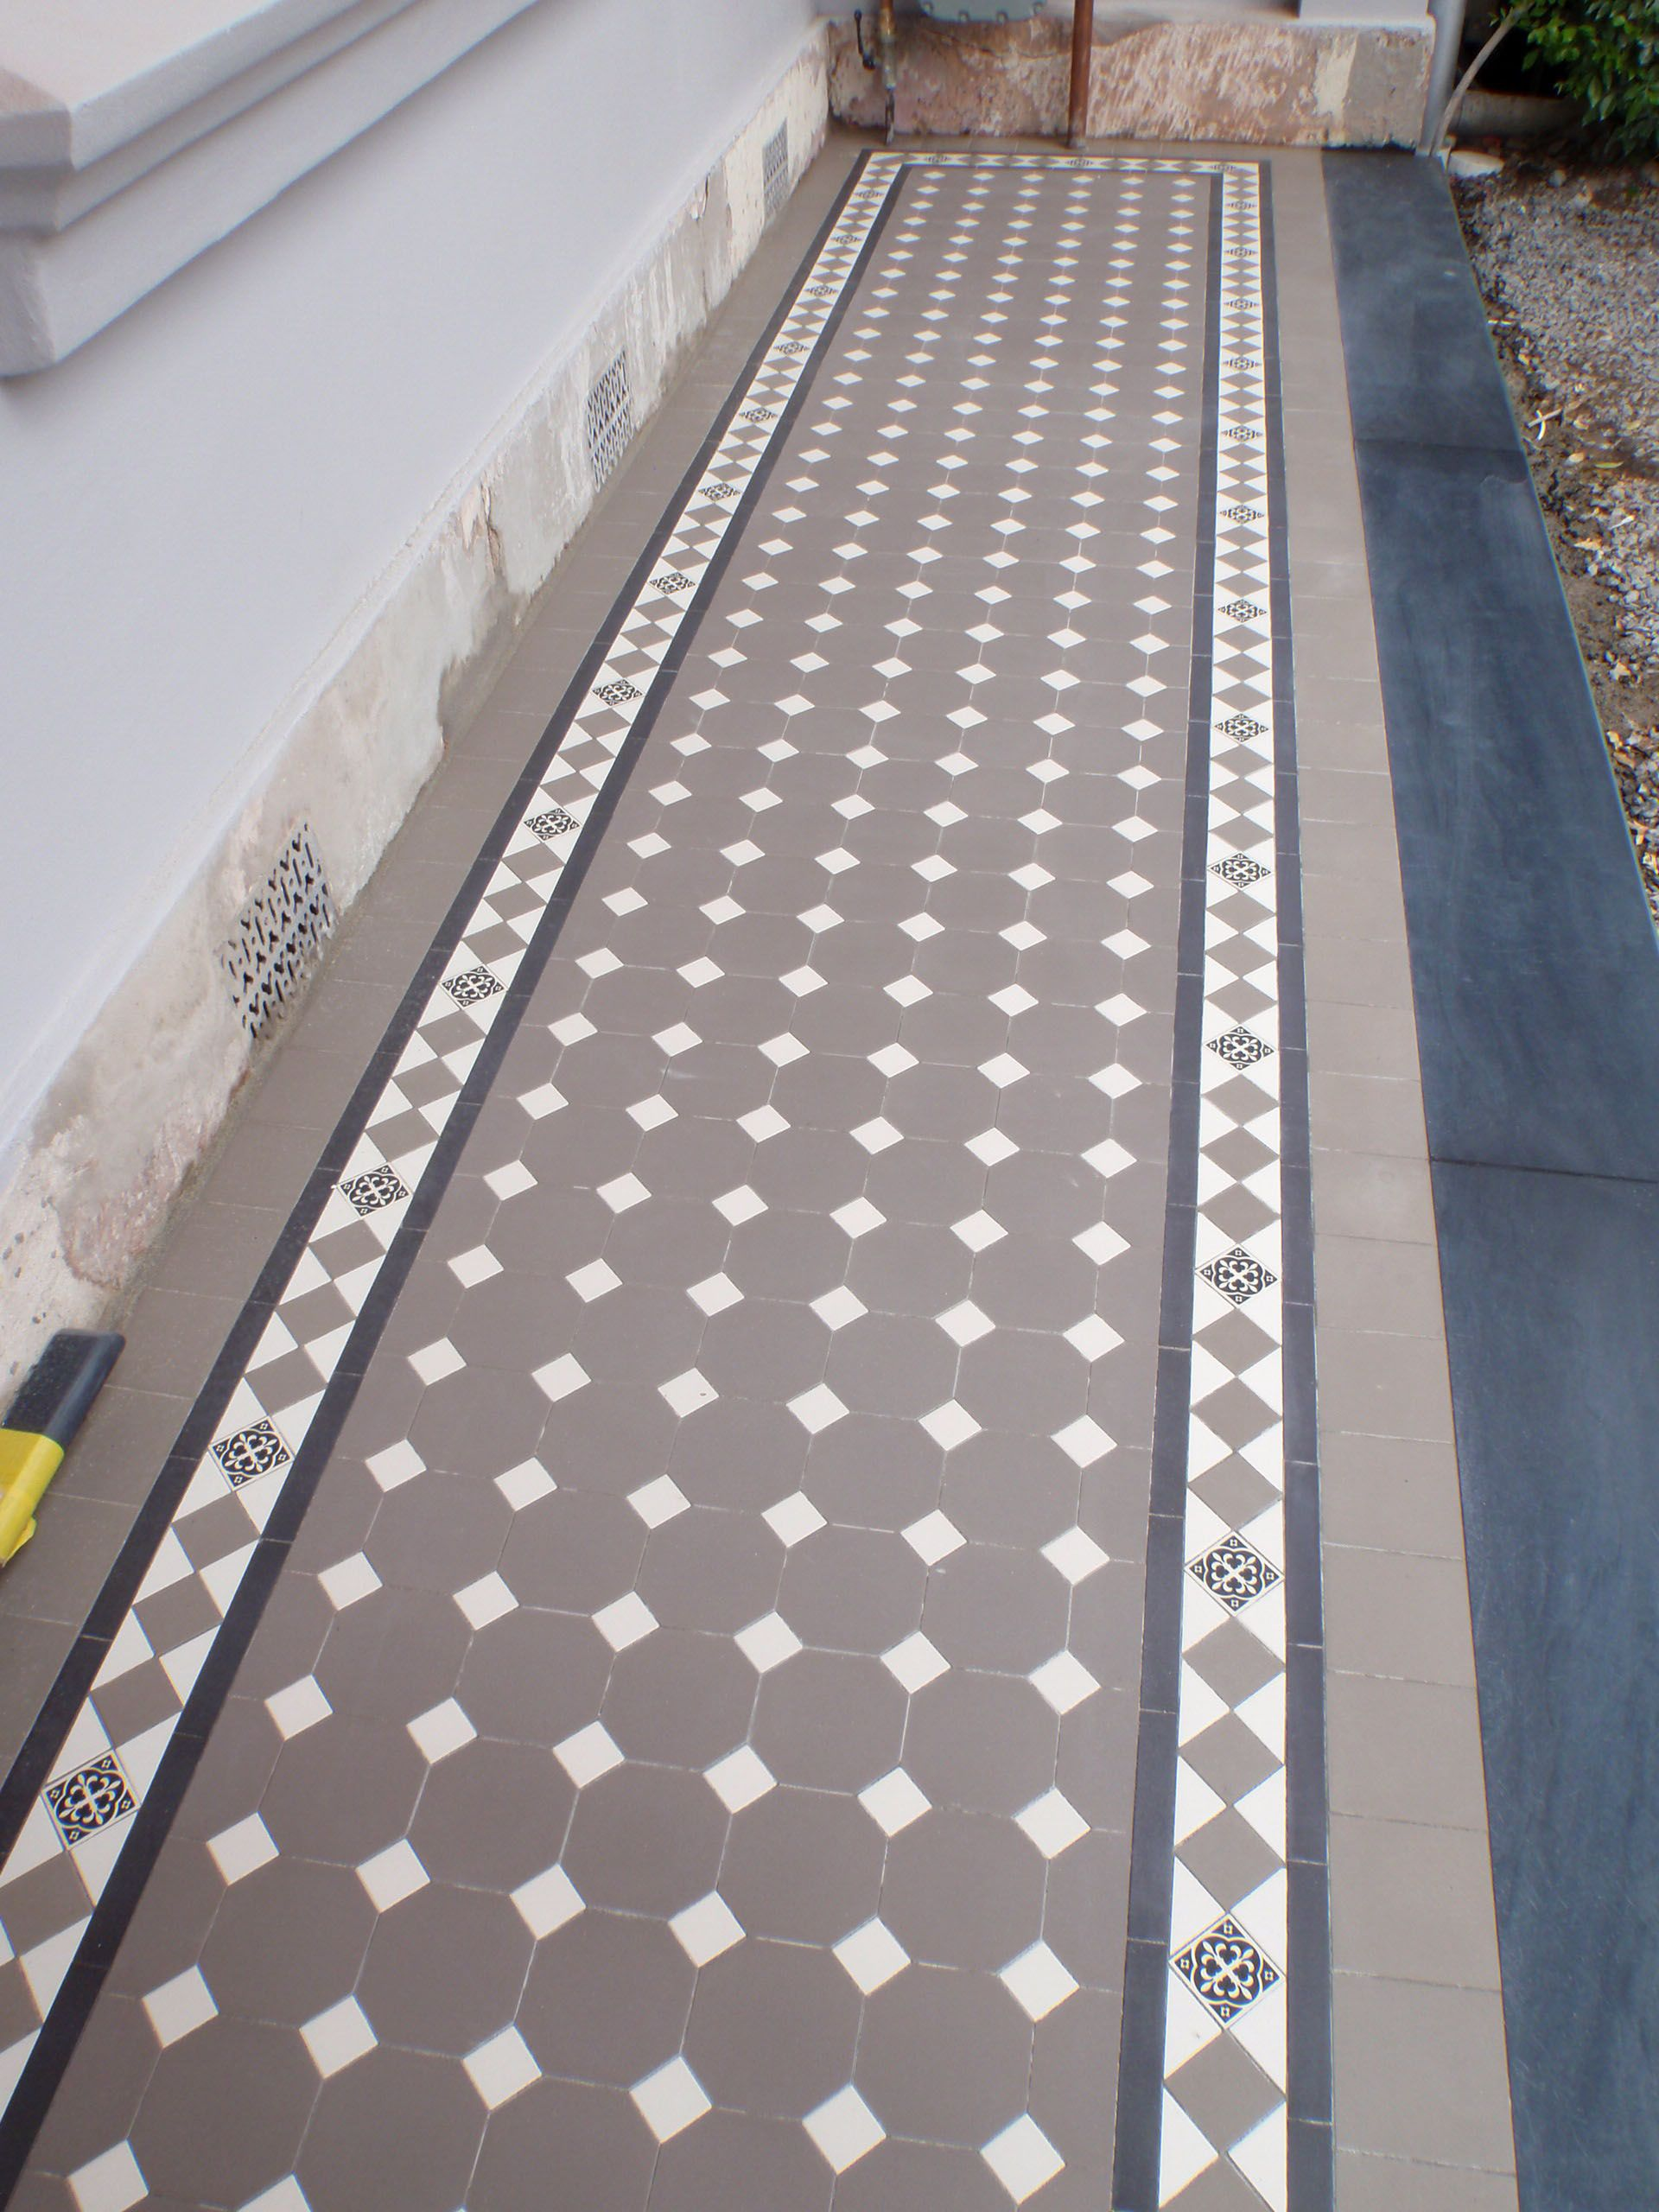 Pin by tessellated tile factory on tessellated tiles verandahs pin by tessellated tile factory on tessellated tiles verandahs pinterest verandas front verandah and veranda ideas dailygadgetfo Images